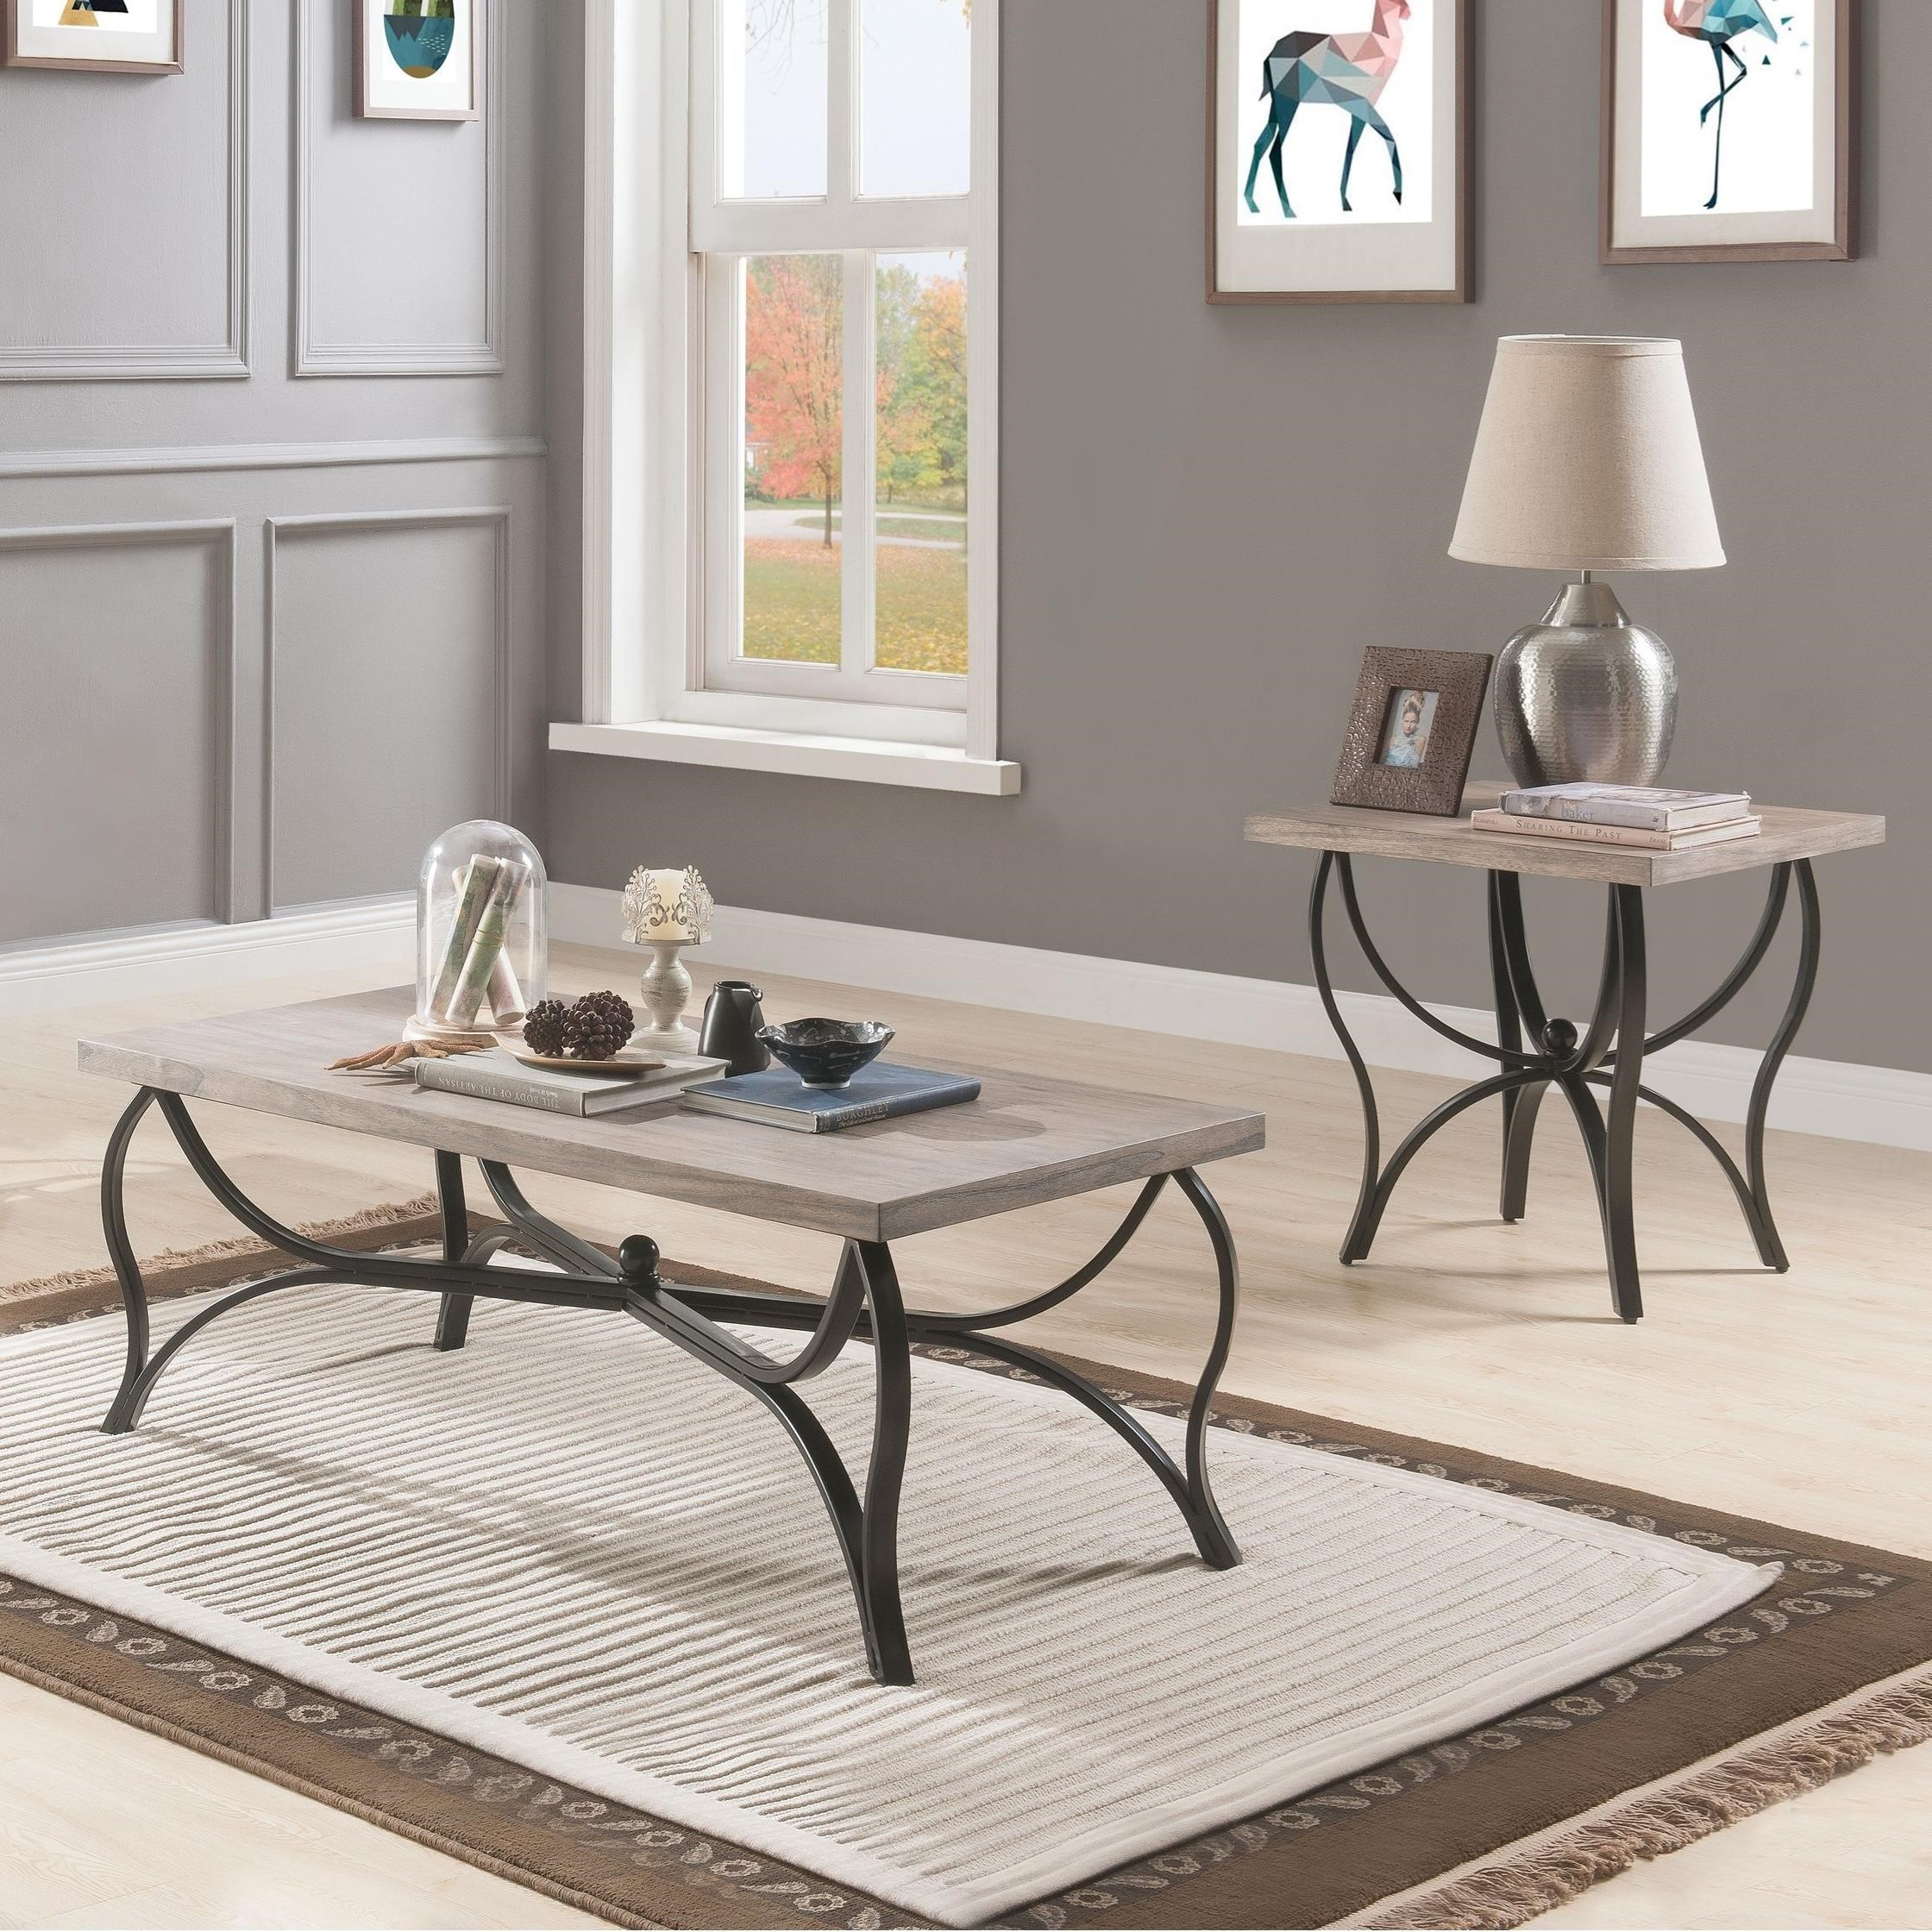 Scilla 3-Piece Occasional Table Set by Acme Furniture at A1 Furniture & Mattress